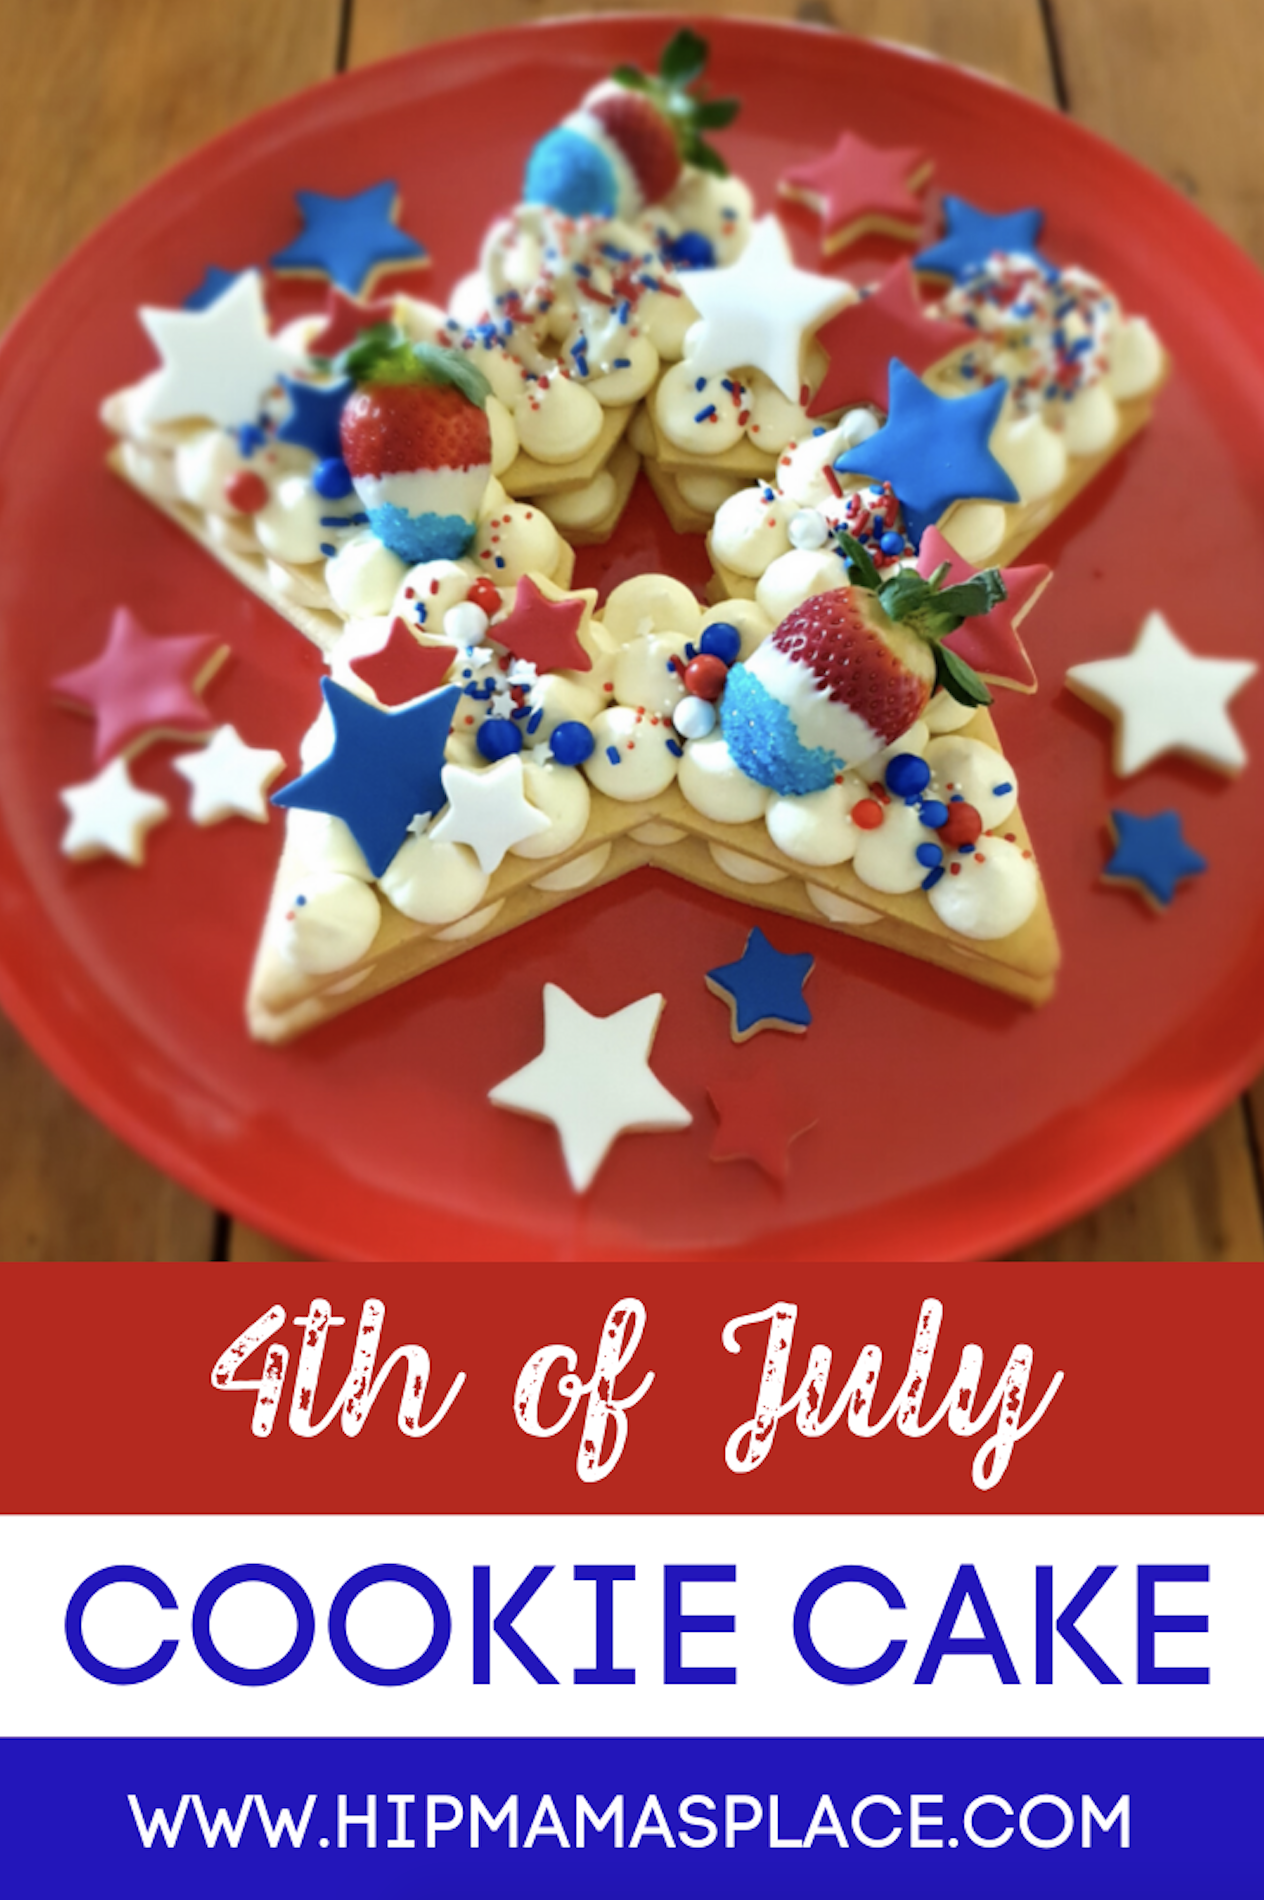 You'll love this easy and delicious 4th of July cookie cake made possible by DoughCuts. Read on for the full step by step recipe! #ad #Doughcuts #desserts $July4thcookiecake #cookies